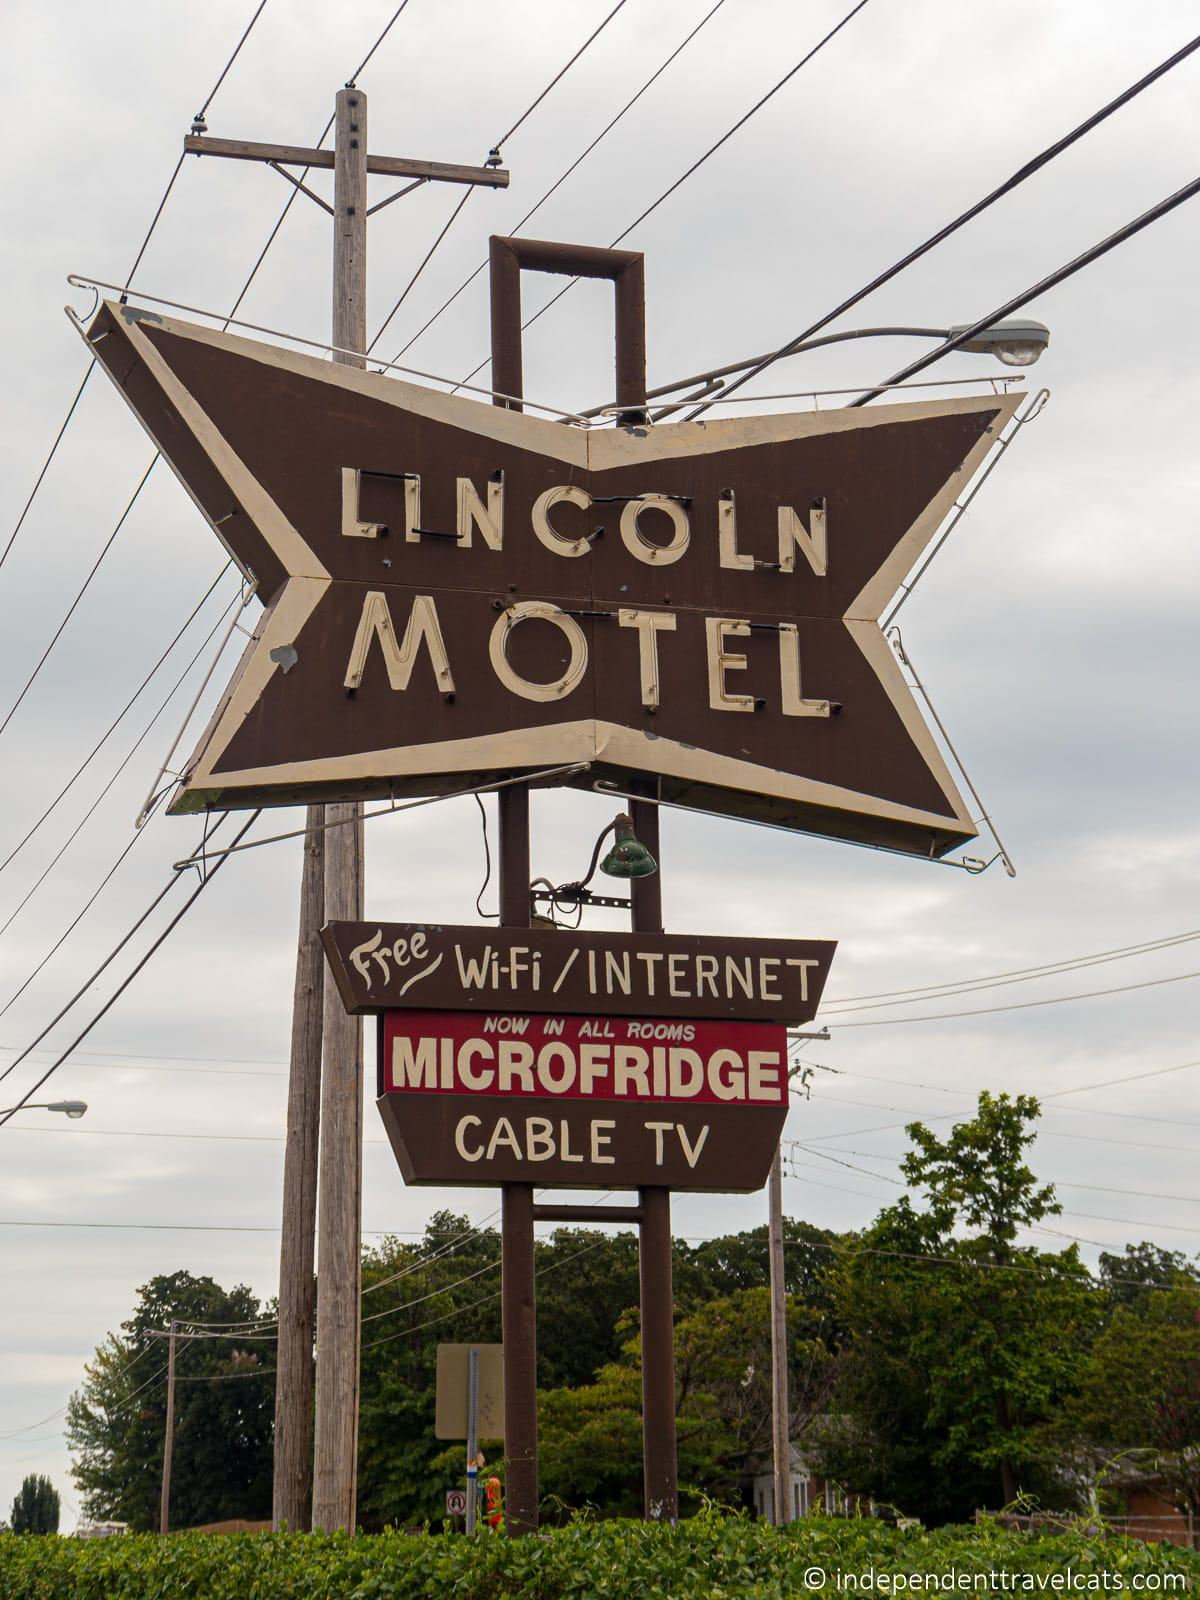 Lincoln Motel sign in Chandler Oklahoma Route 66 motels